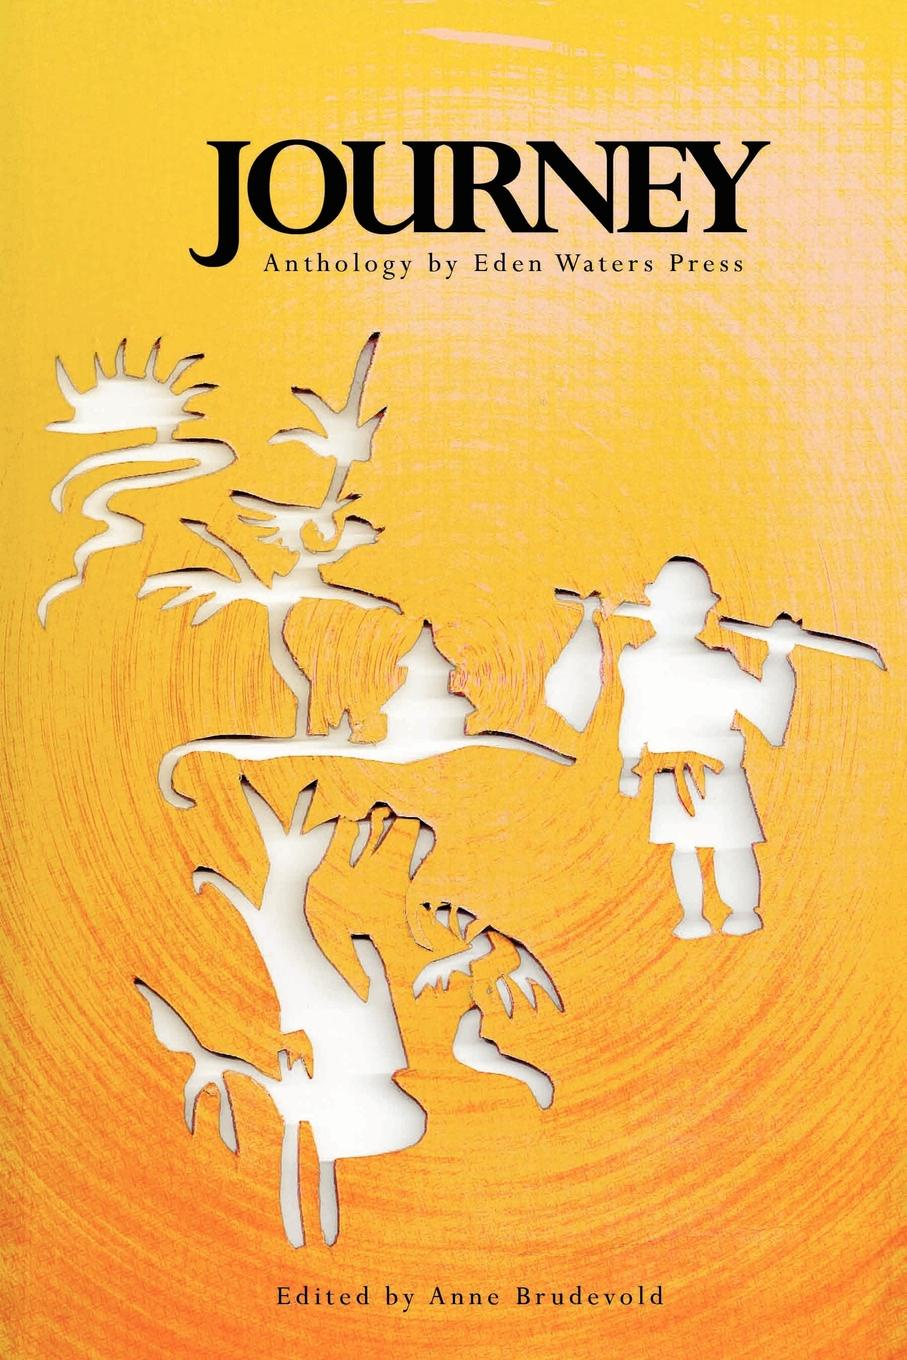 Anne Brudevold Journey Anthology by Eden Waters Press union day tanzania gifts